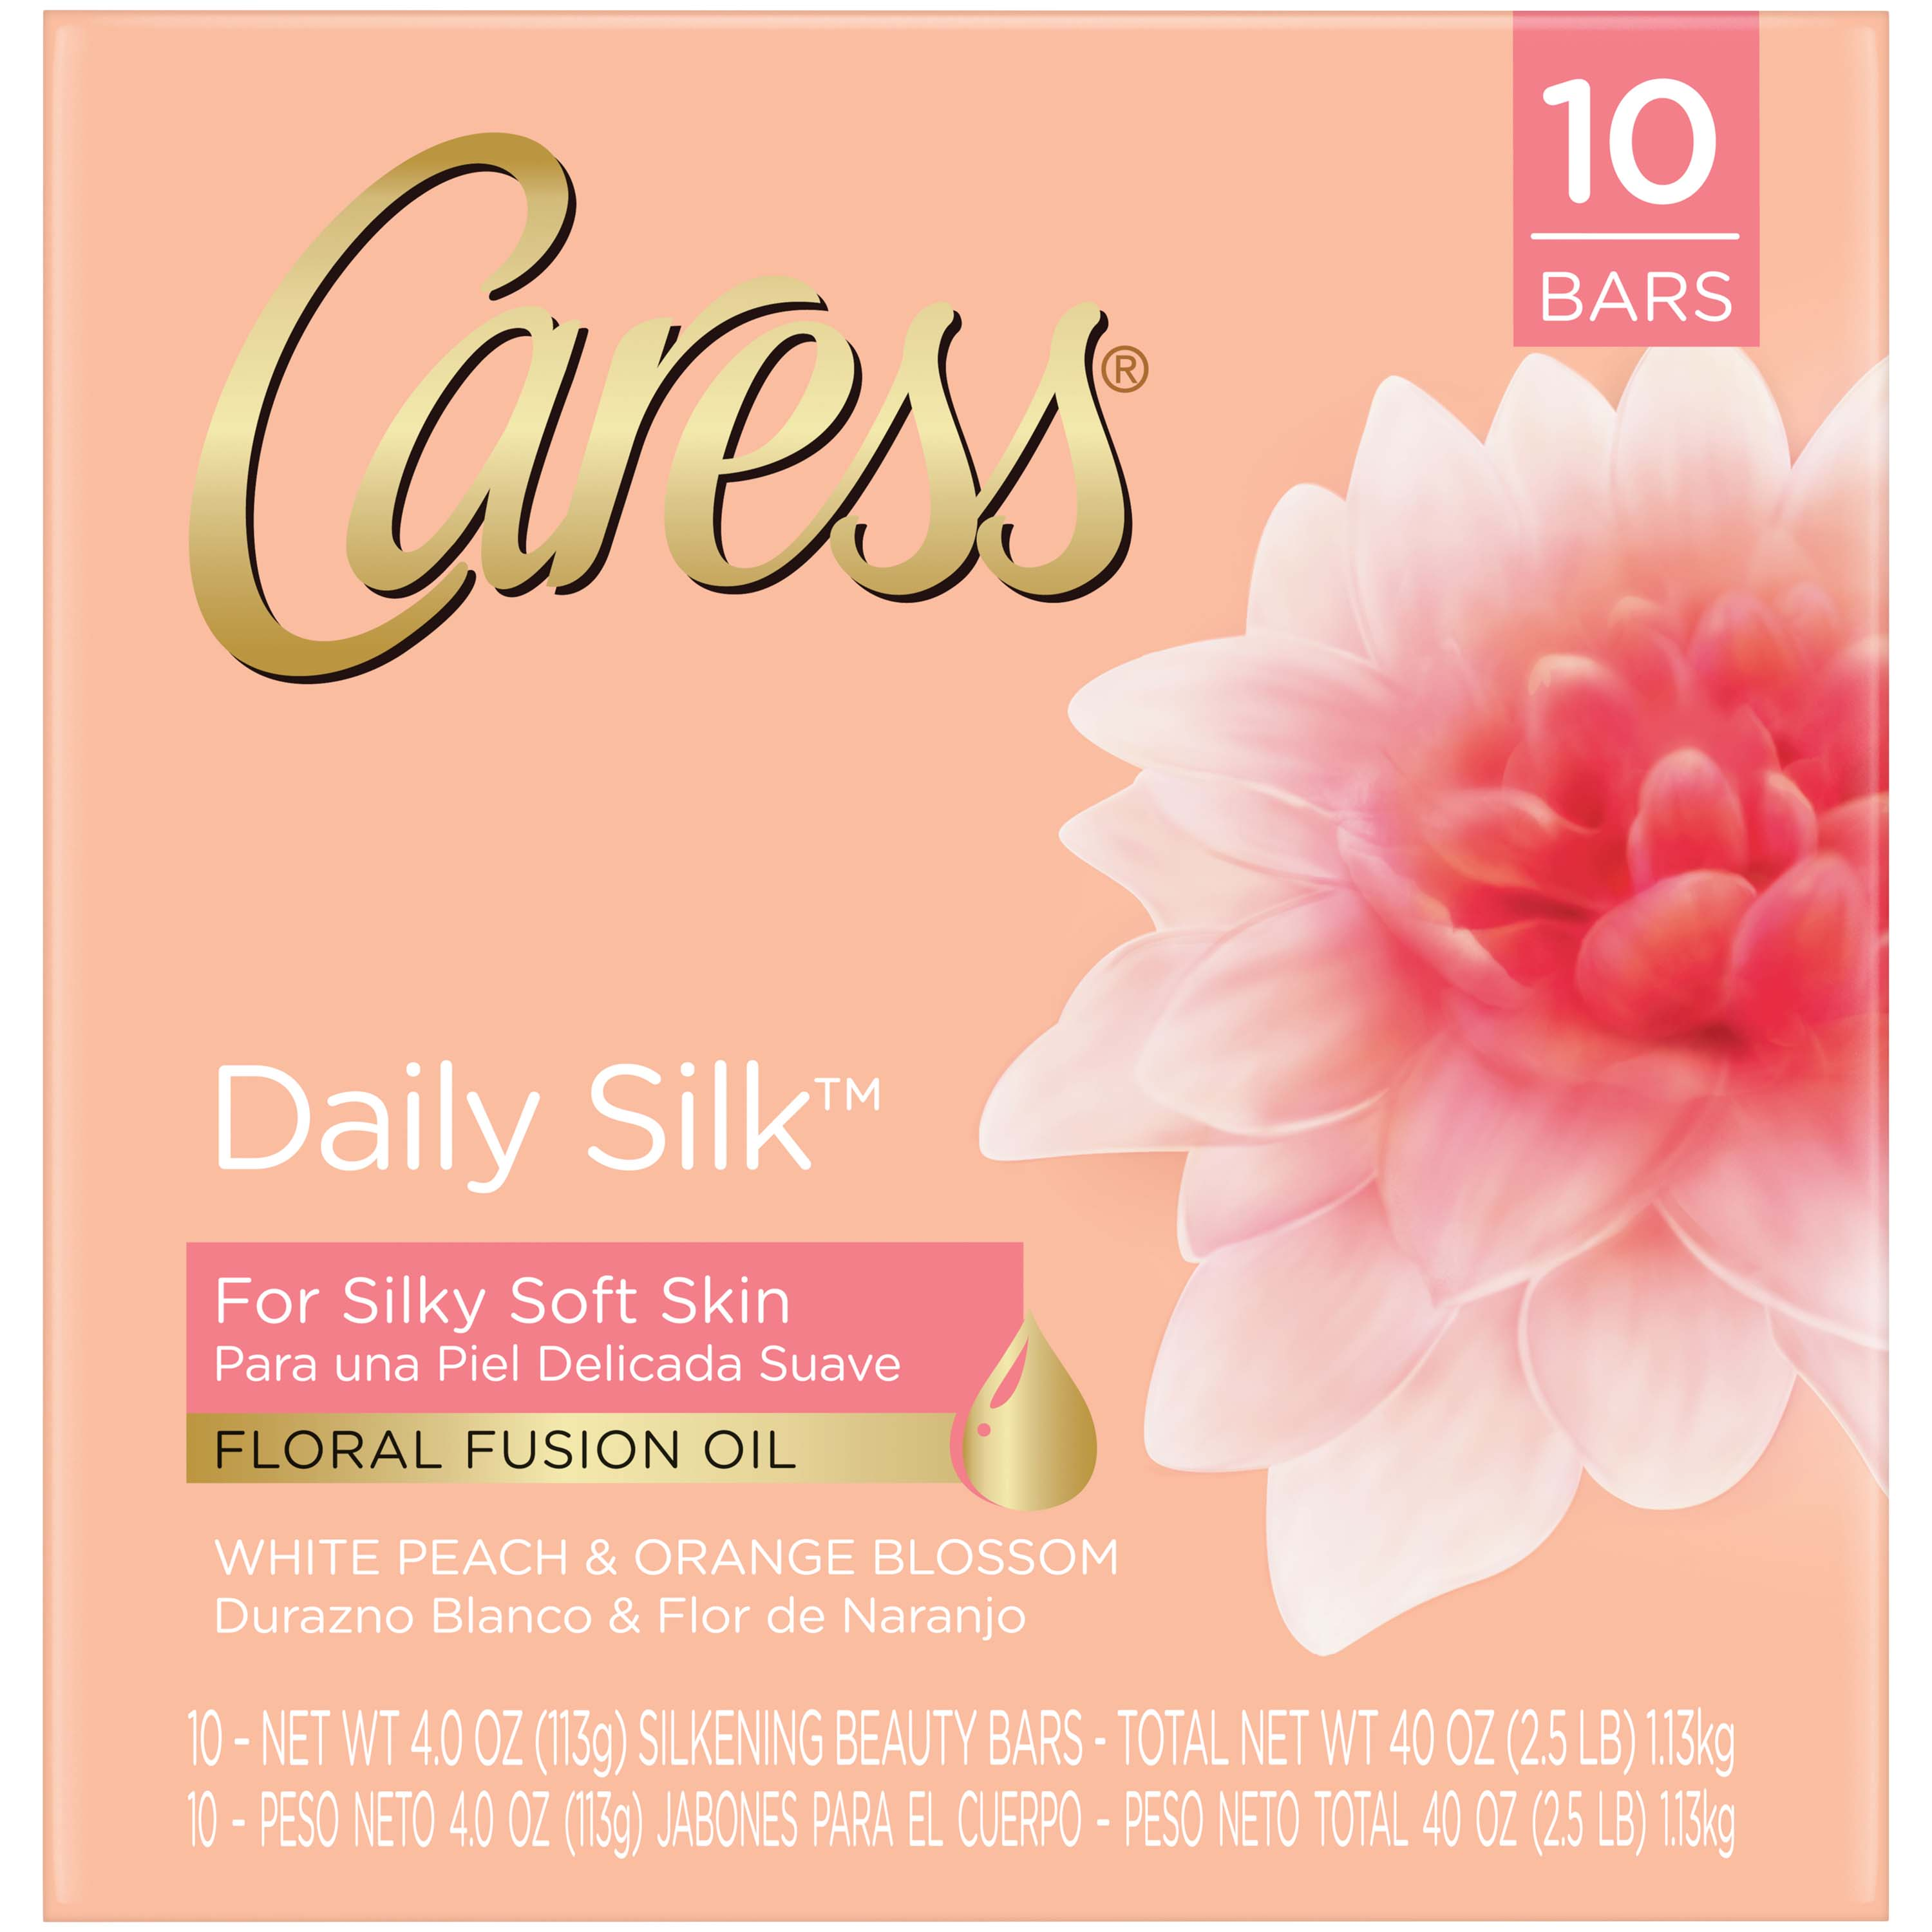 Caress Daily Silk, Bar Soap, 4 oz, 10 Bar